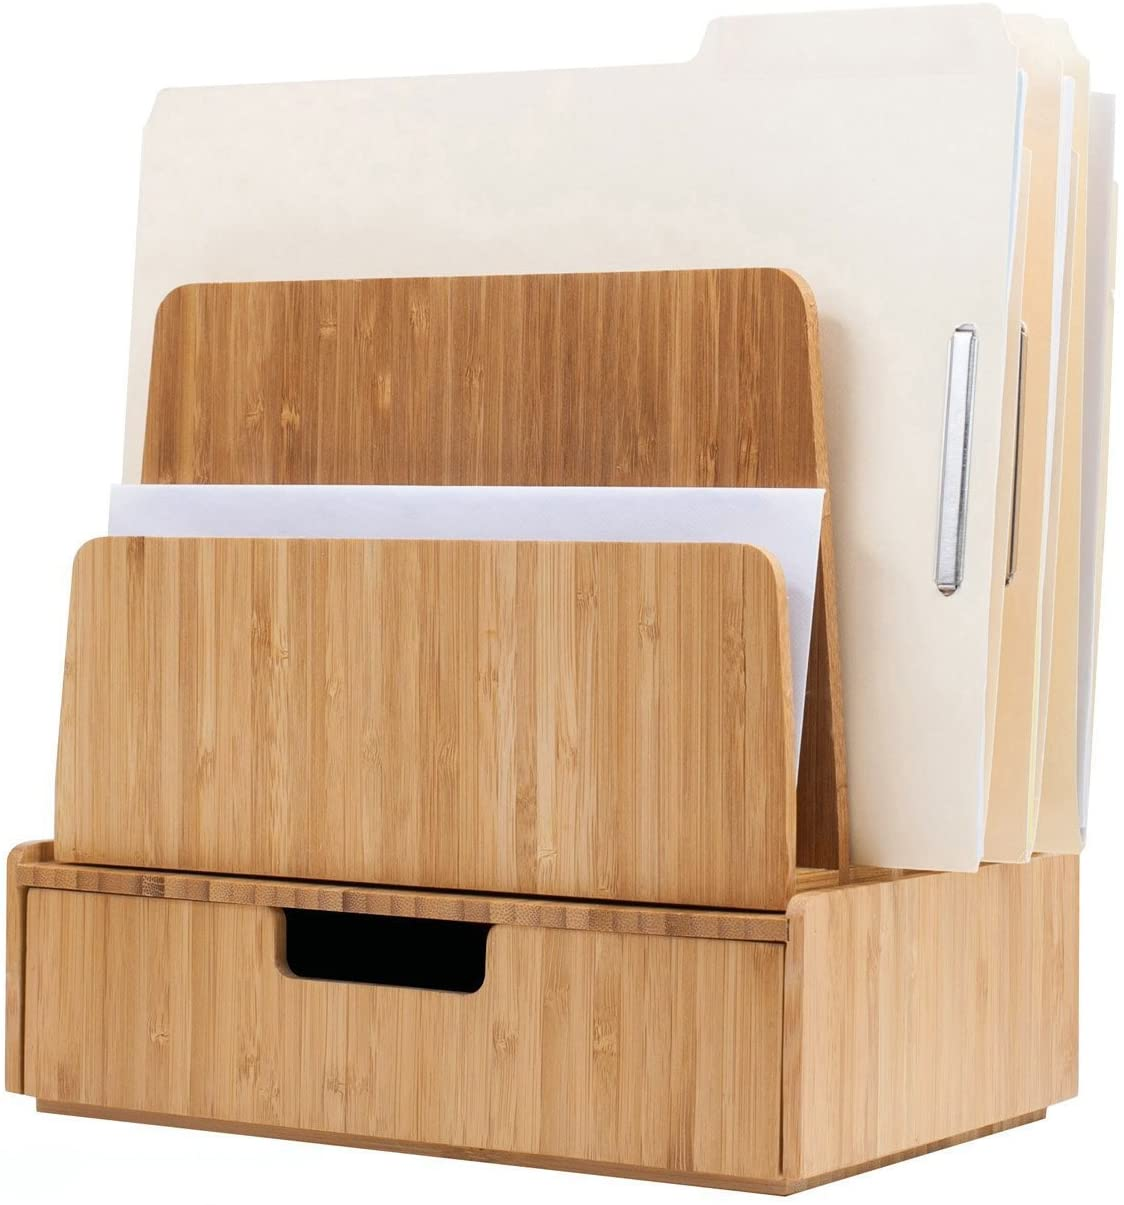 Desktop Paper Tray File Folder Holder 5-Slot, Bamboo Drawer Set; Storage for Office Supplies & Stationary Items, pens, Pencils, Scissors, notepads, Business Cards and More